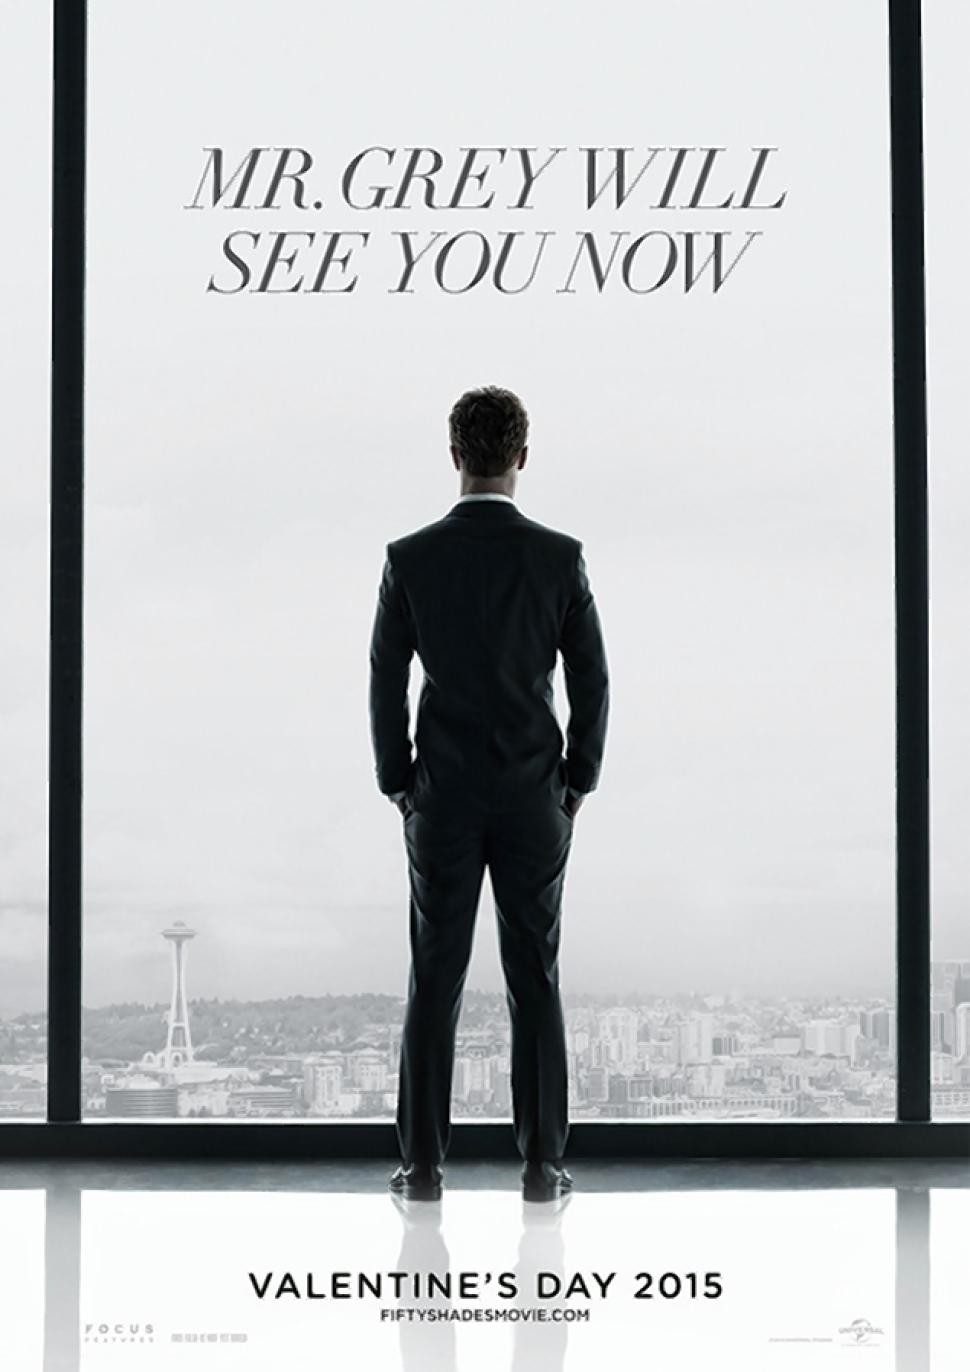 E! Special: The Real 50 Shades Of Grey